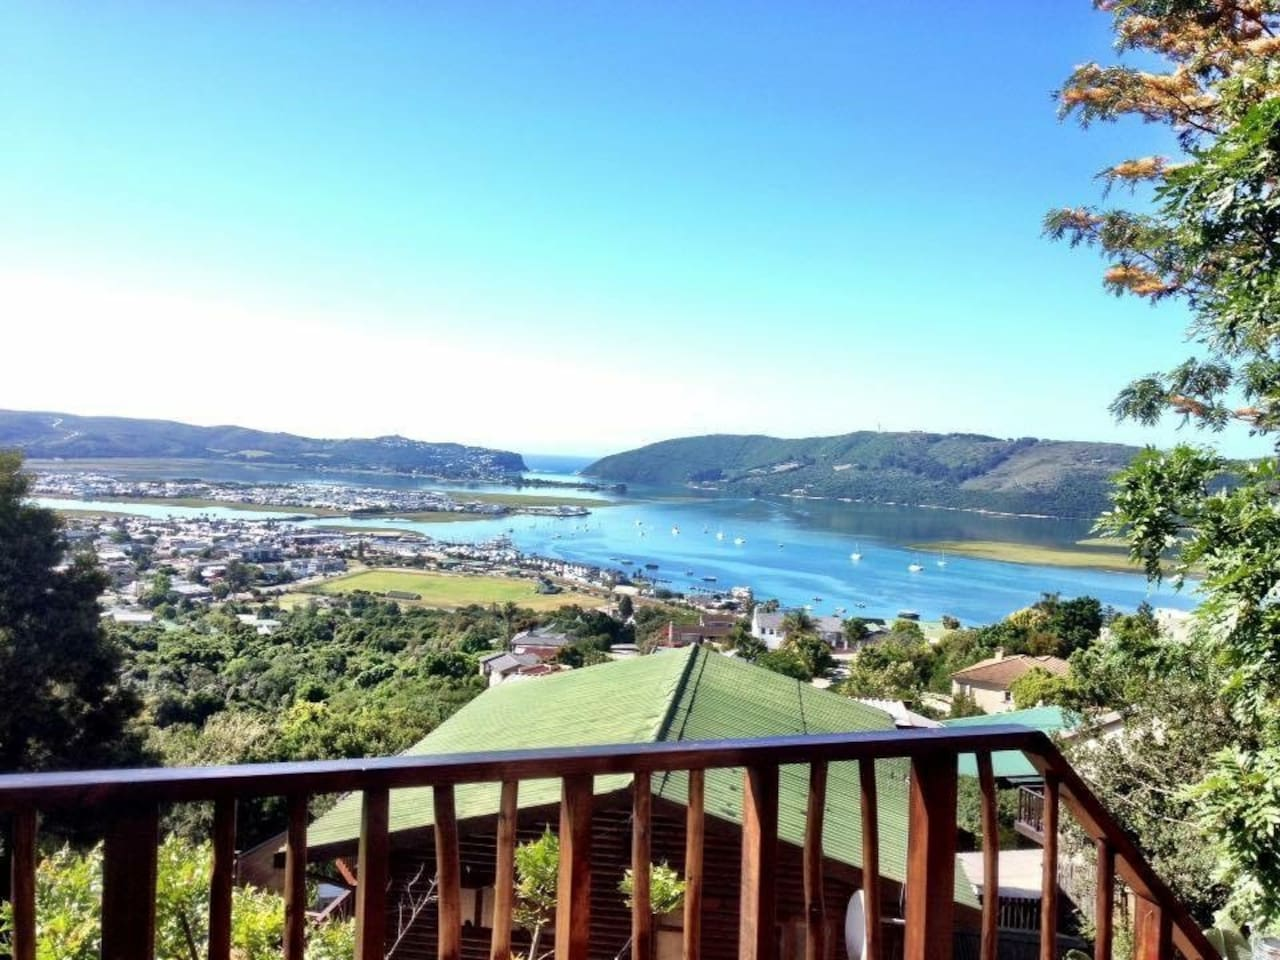 The ultimate Knysna experience! Breathtaking views, excellent location close to restaurants and shops and sight seeing activities where you'll also get discounts on certain activities. Book now you won't be disappointed ;-)